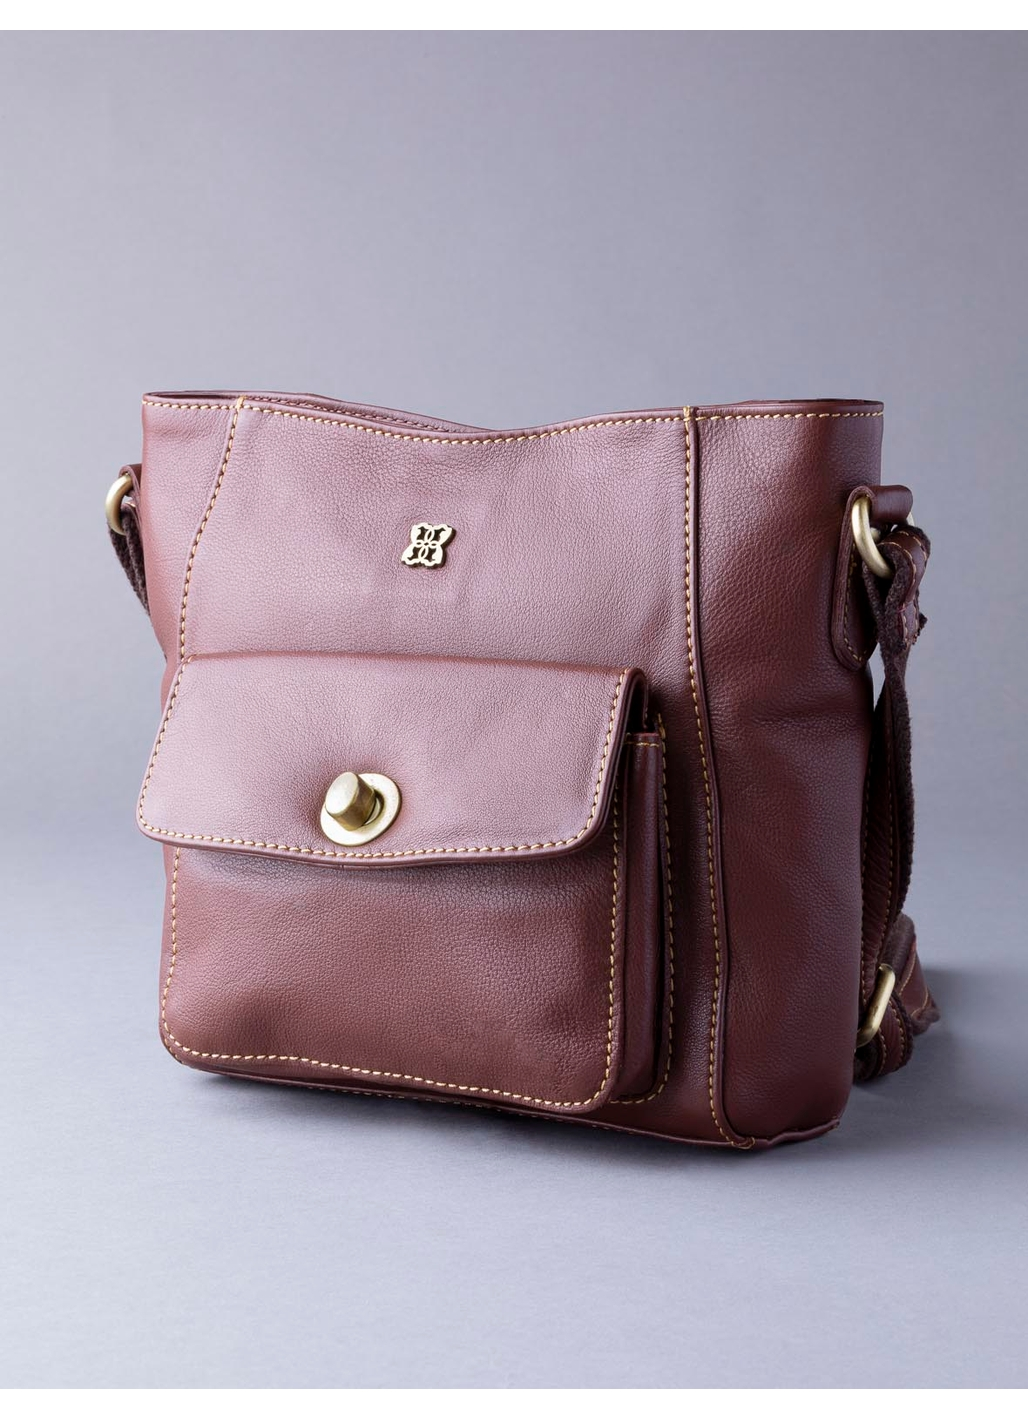 Rickerby Leather Cross Body Bag in Chestnut